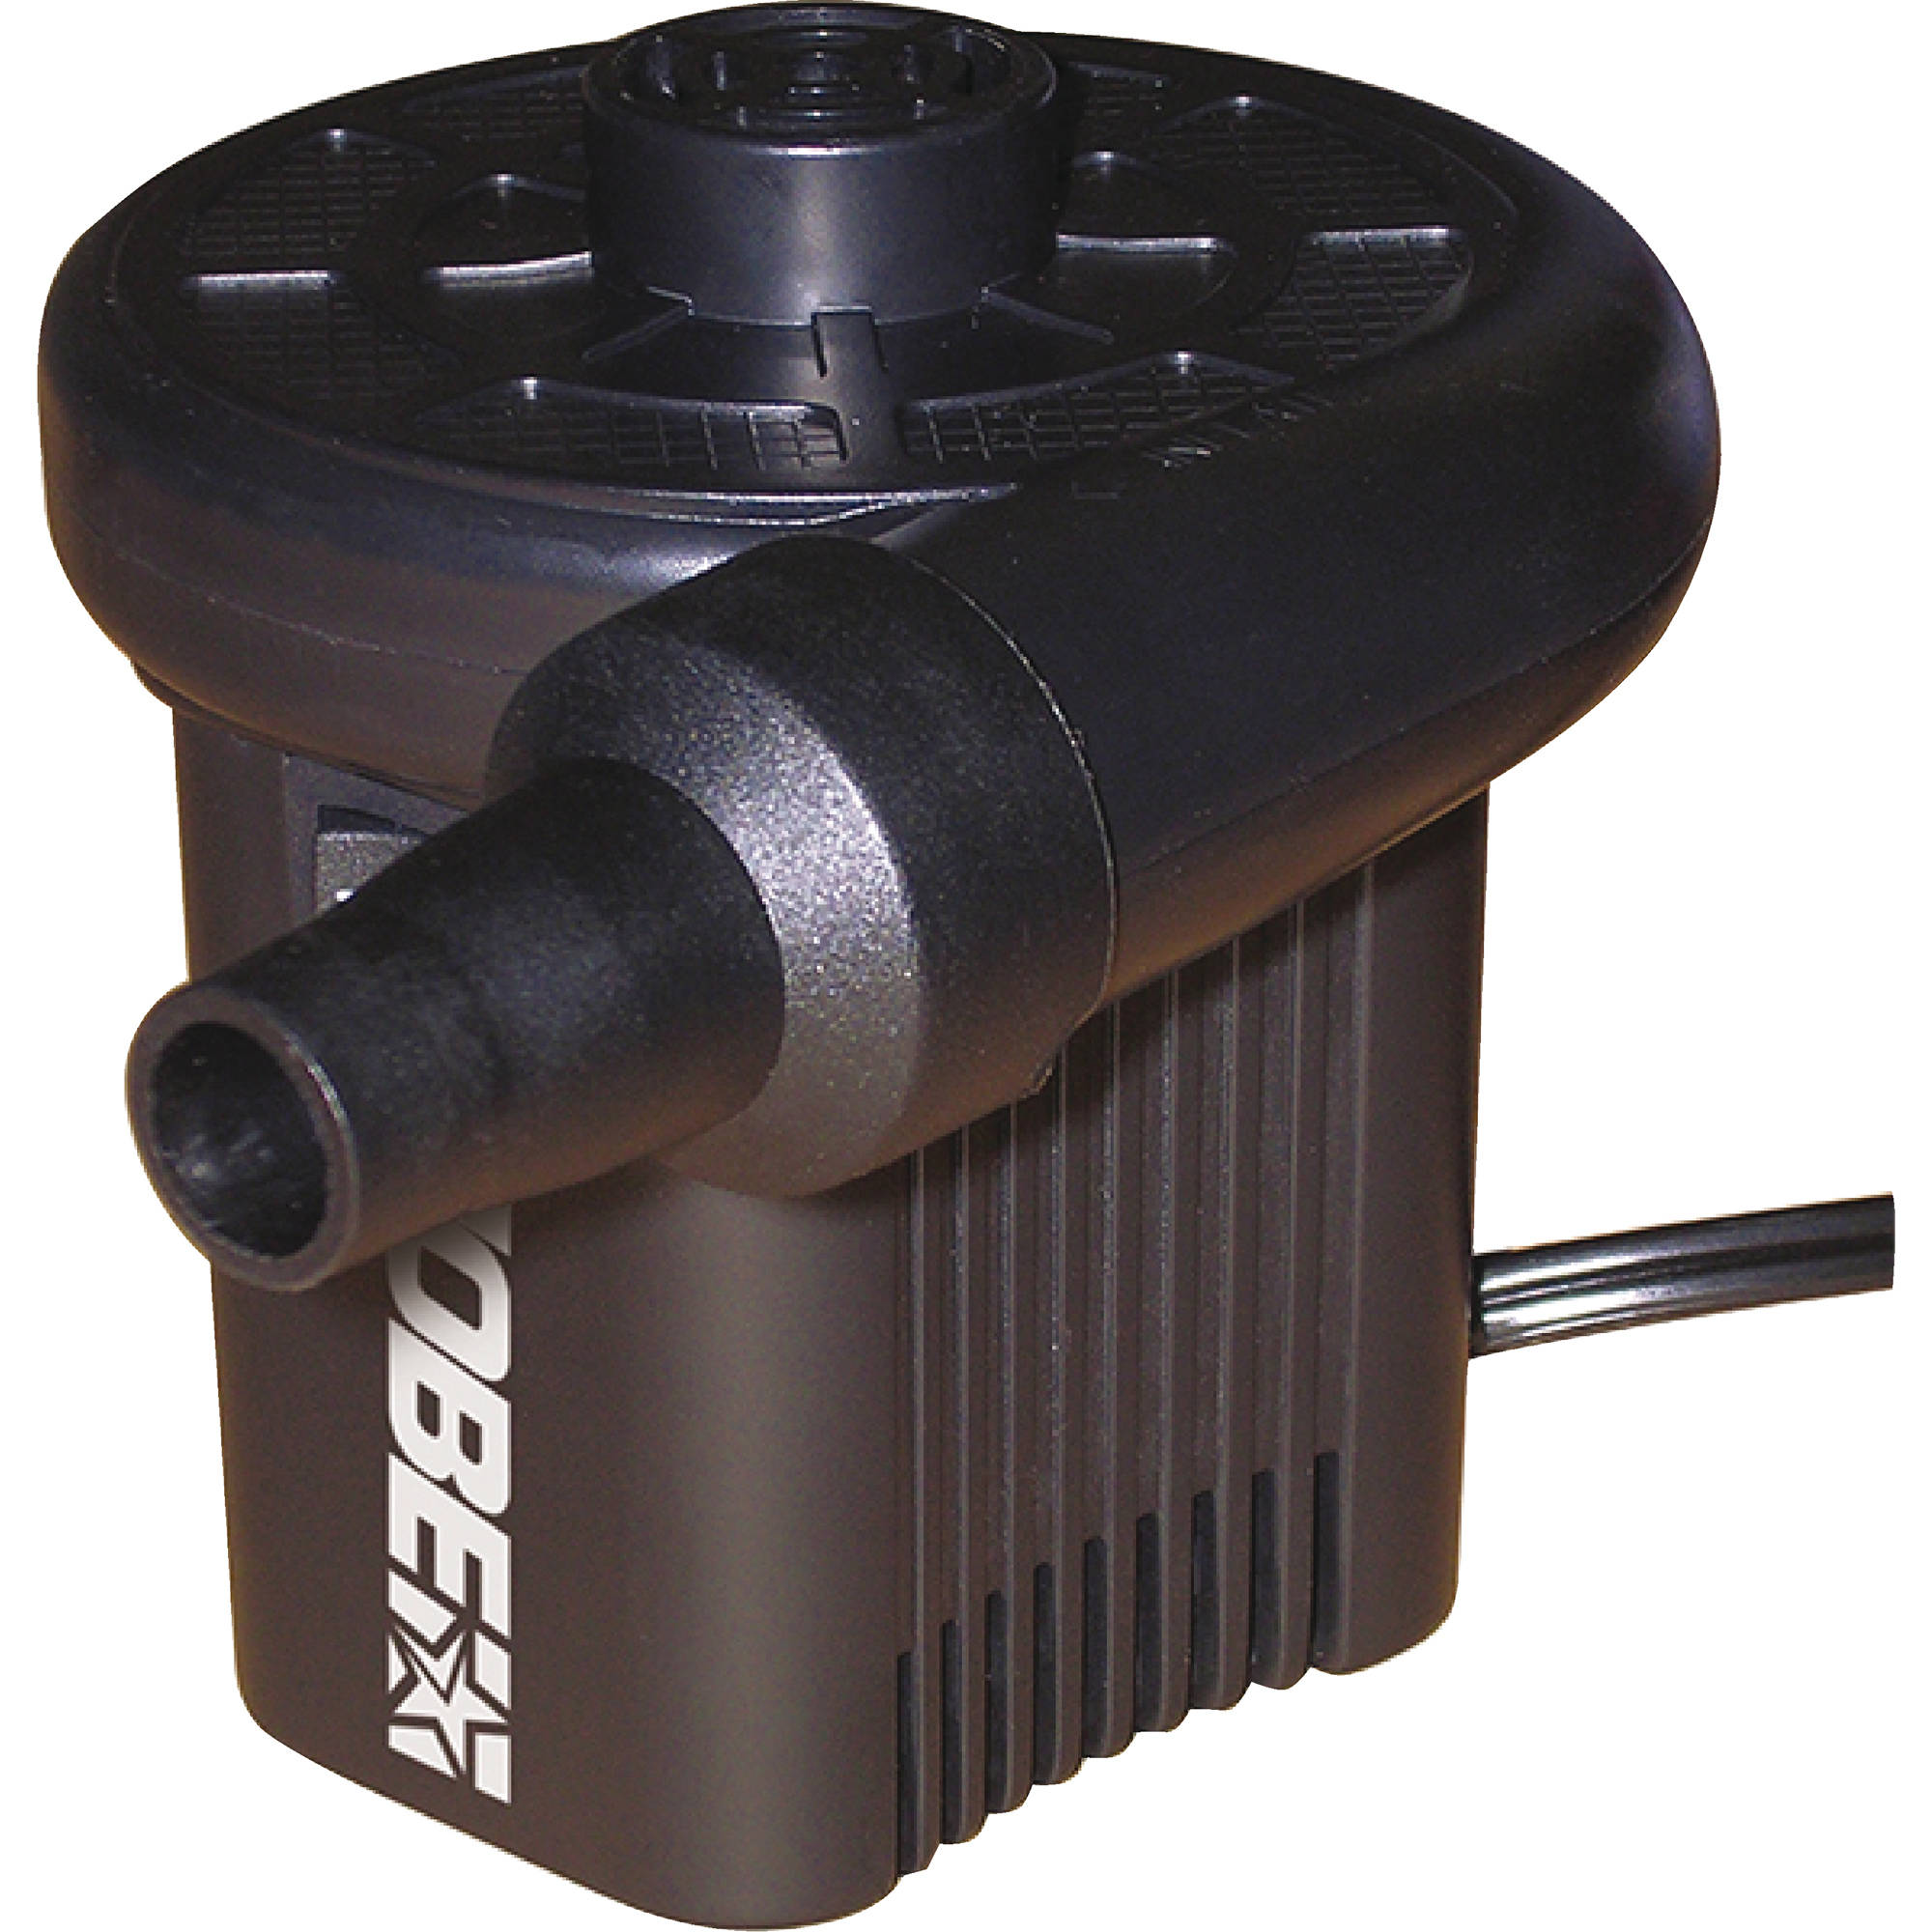 Jobe 410017202 12V Air Pump for Inflatable Towables by Jobe Sport International